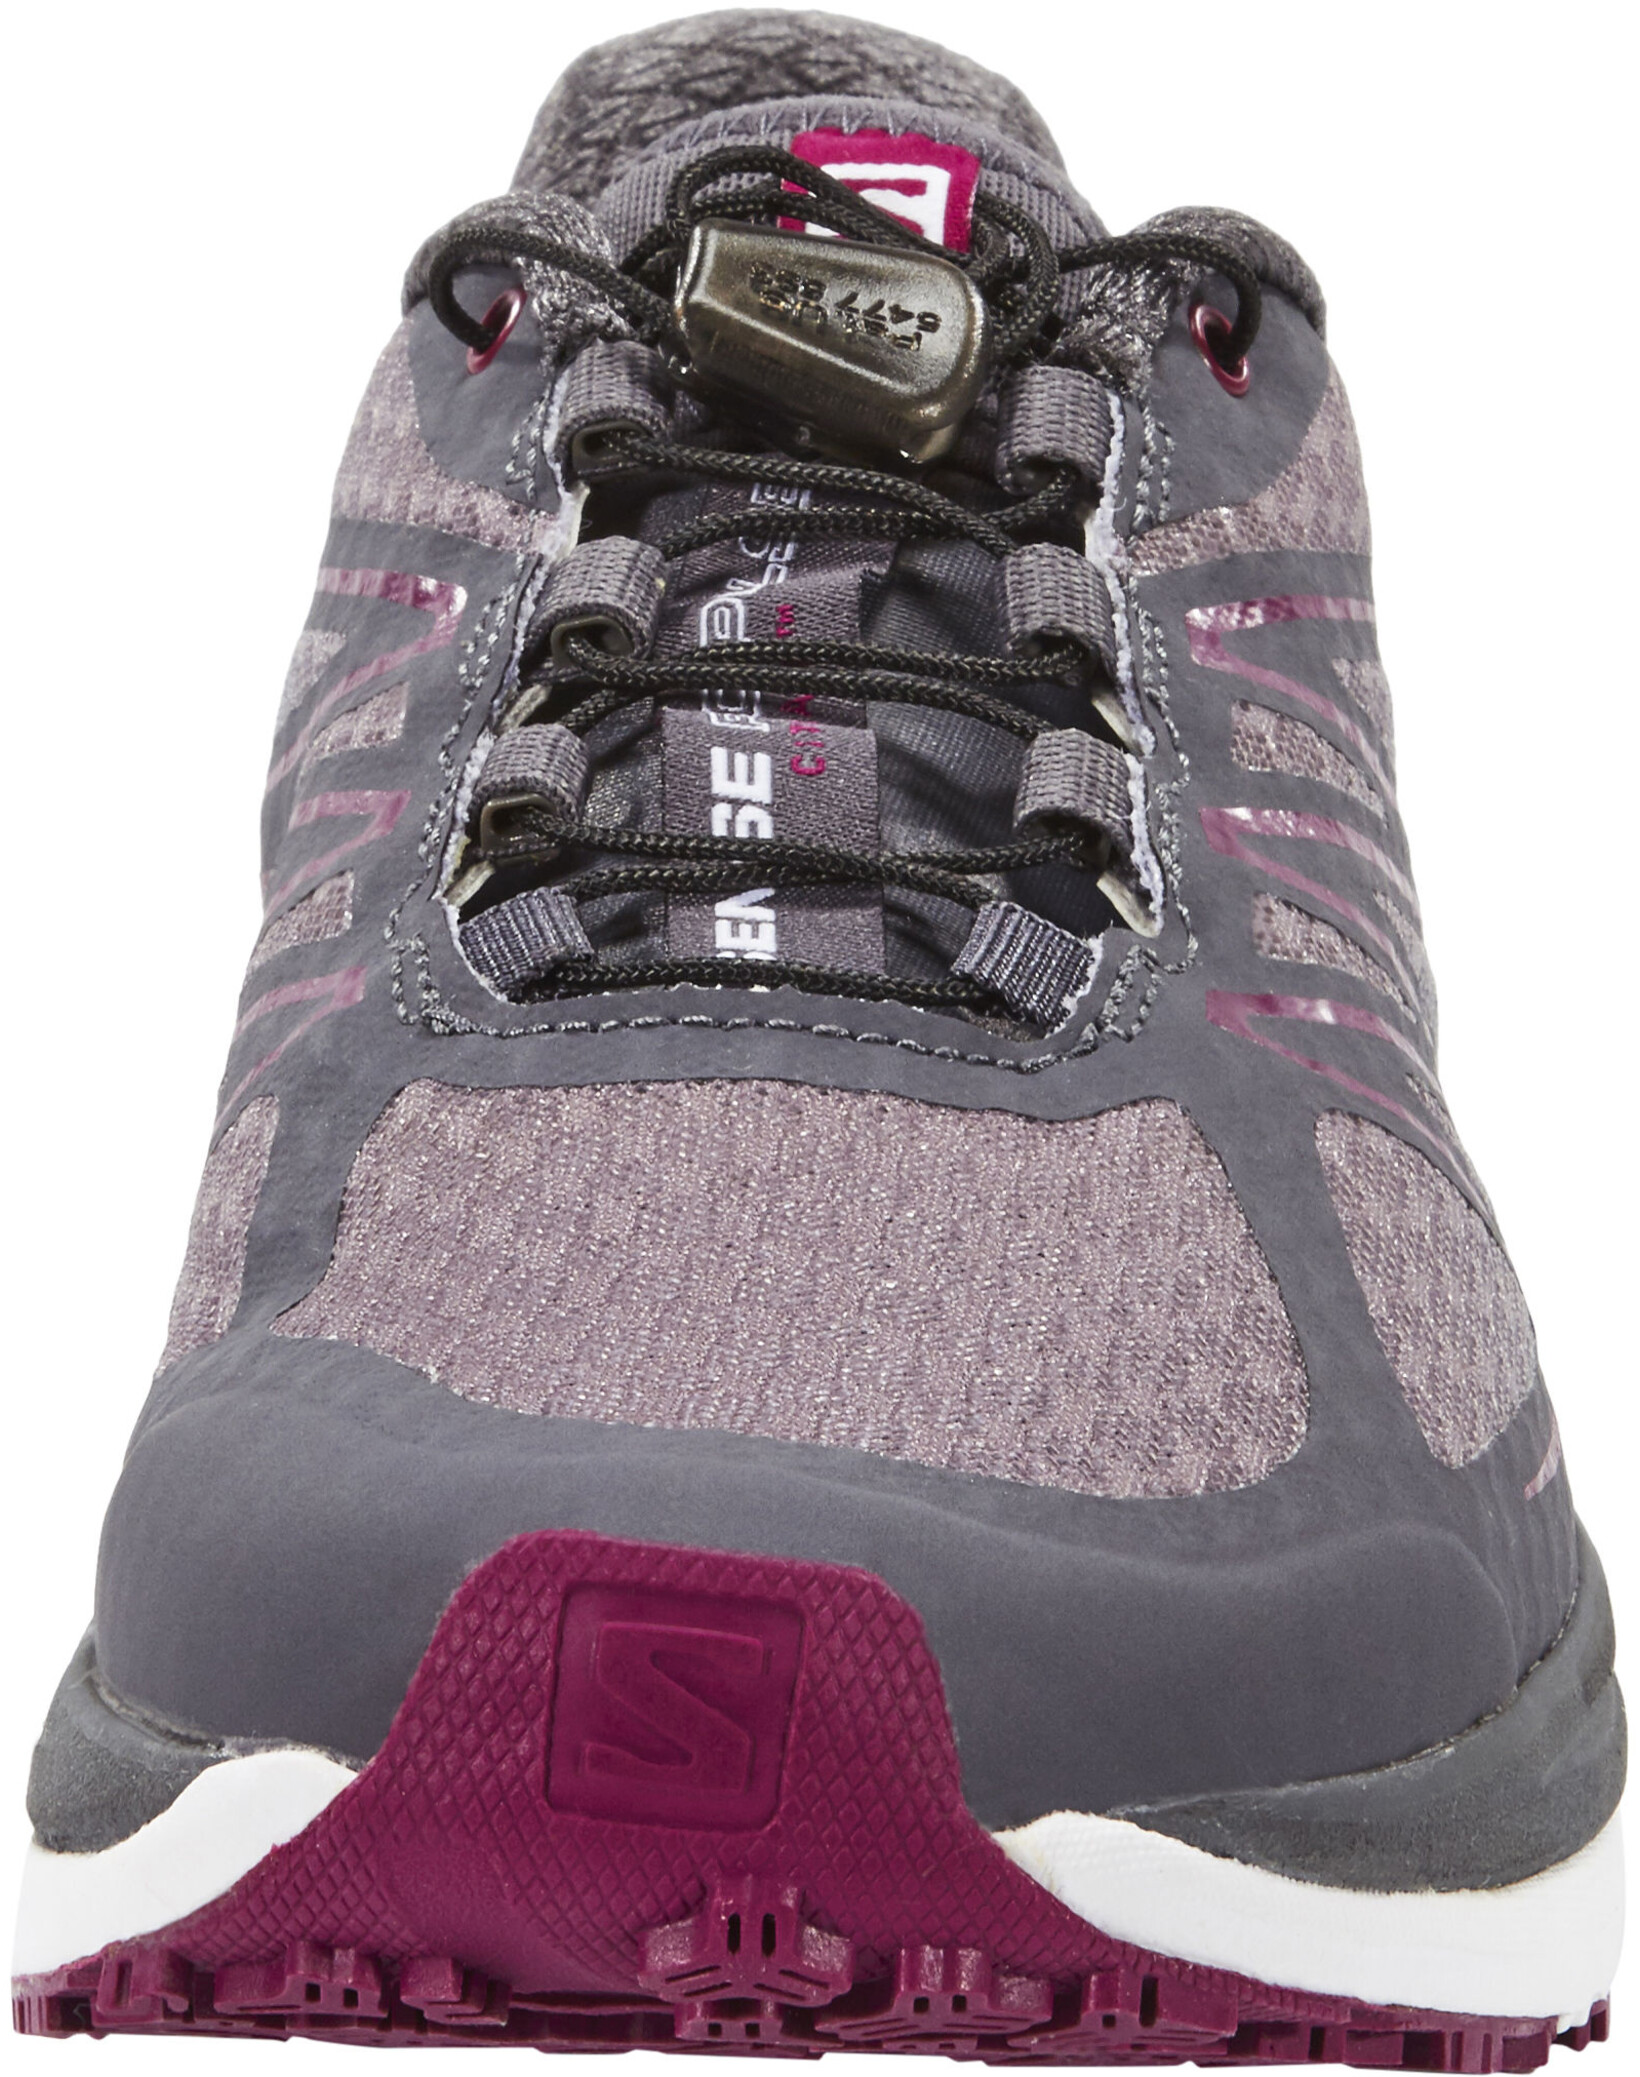 b43f1c47 Salomon Sense Propulse Buty do biegania Kobiety, dark cloud/light  onix/mystic purple